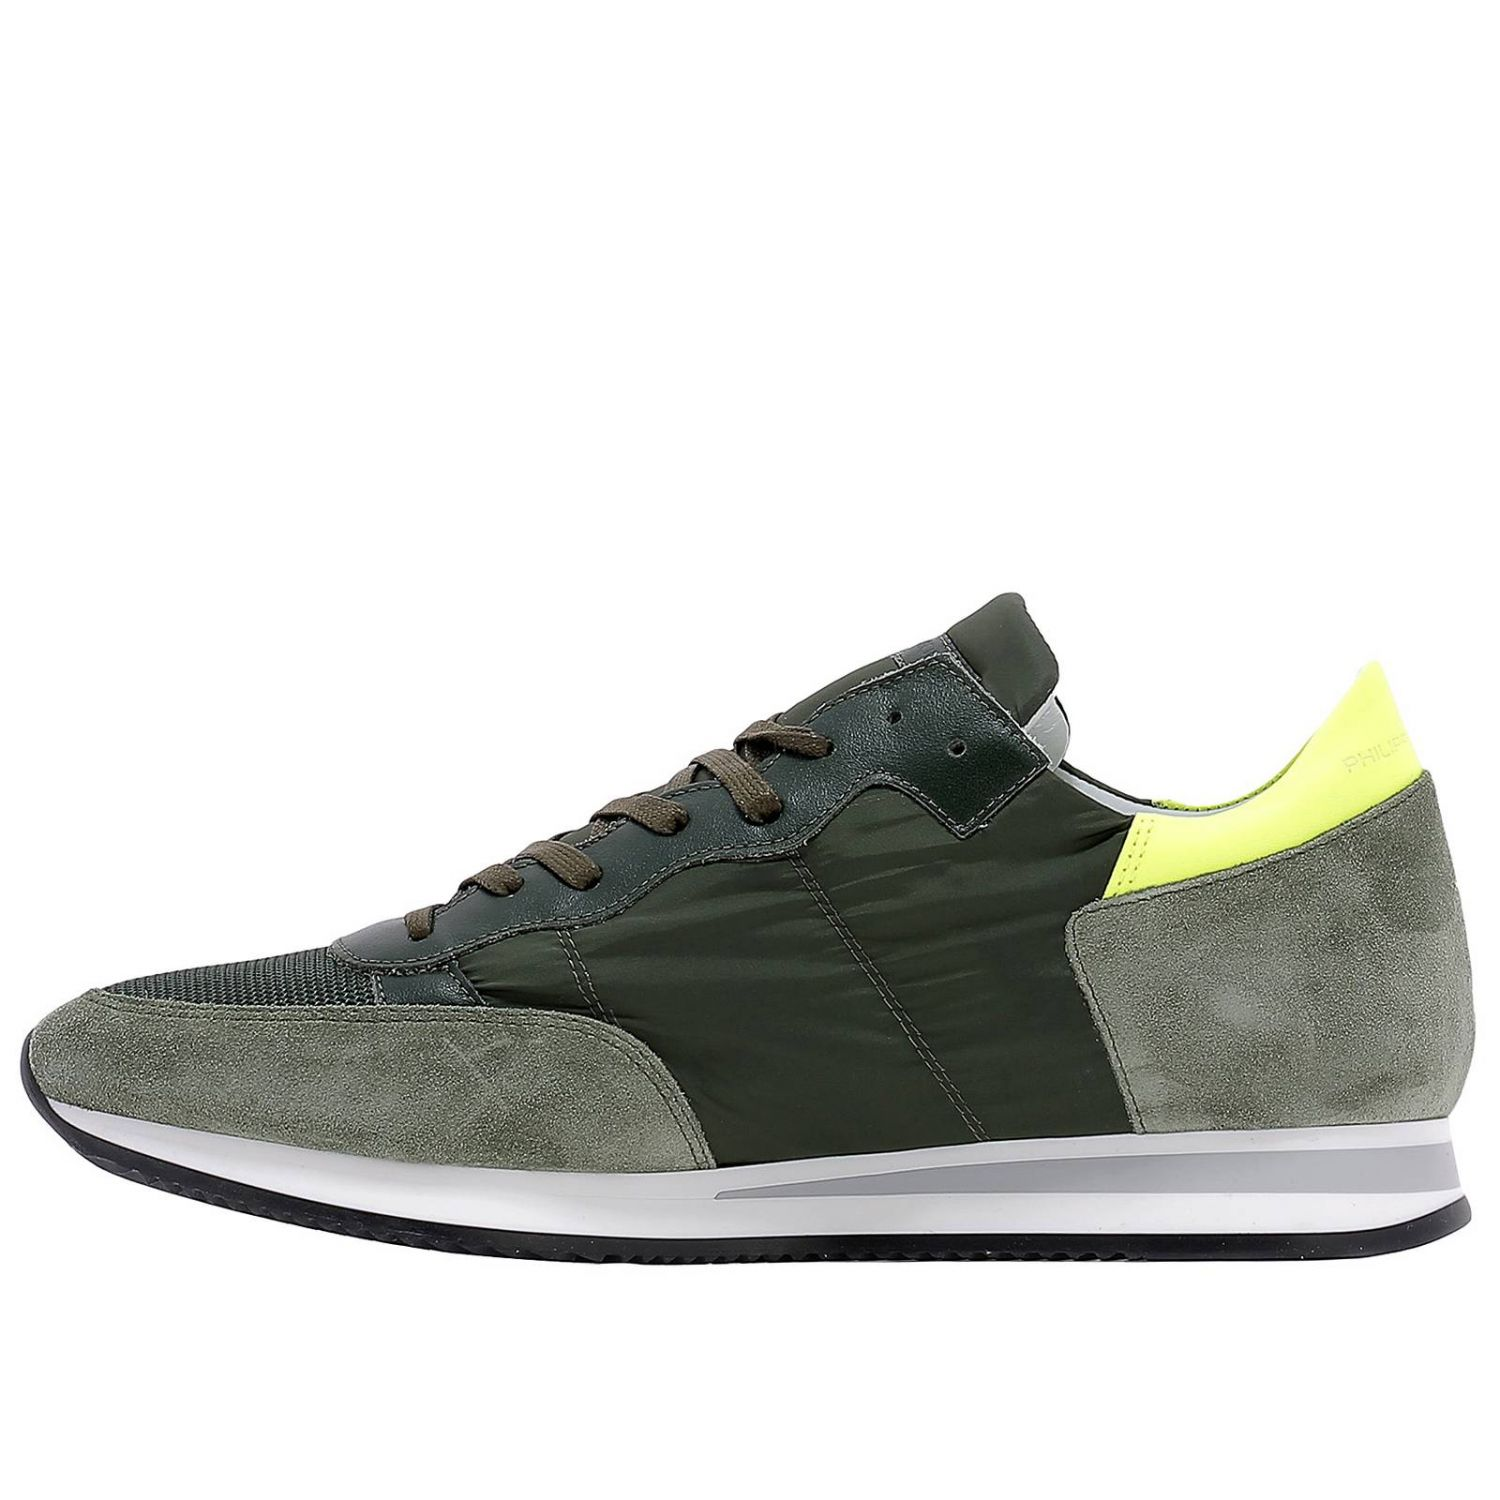 Baskets Philippe Model: Chaussures homme Philippe Model vert acide 4